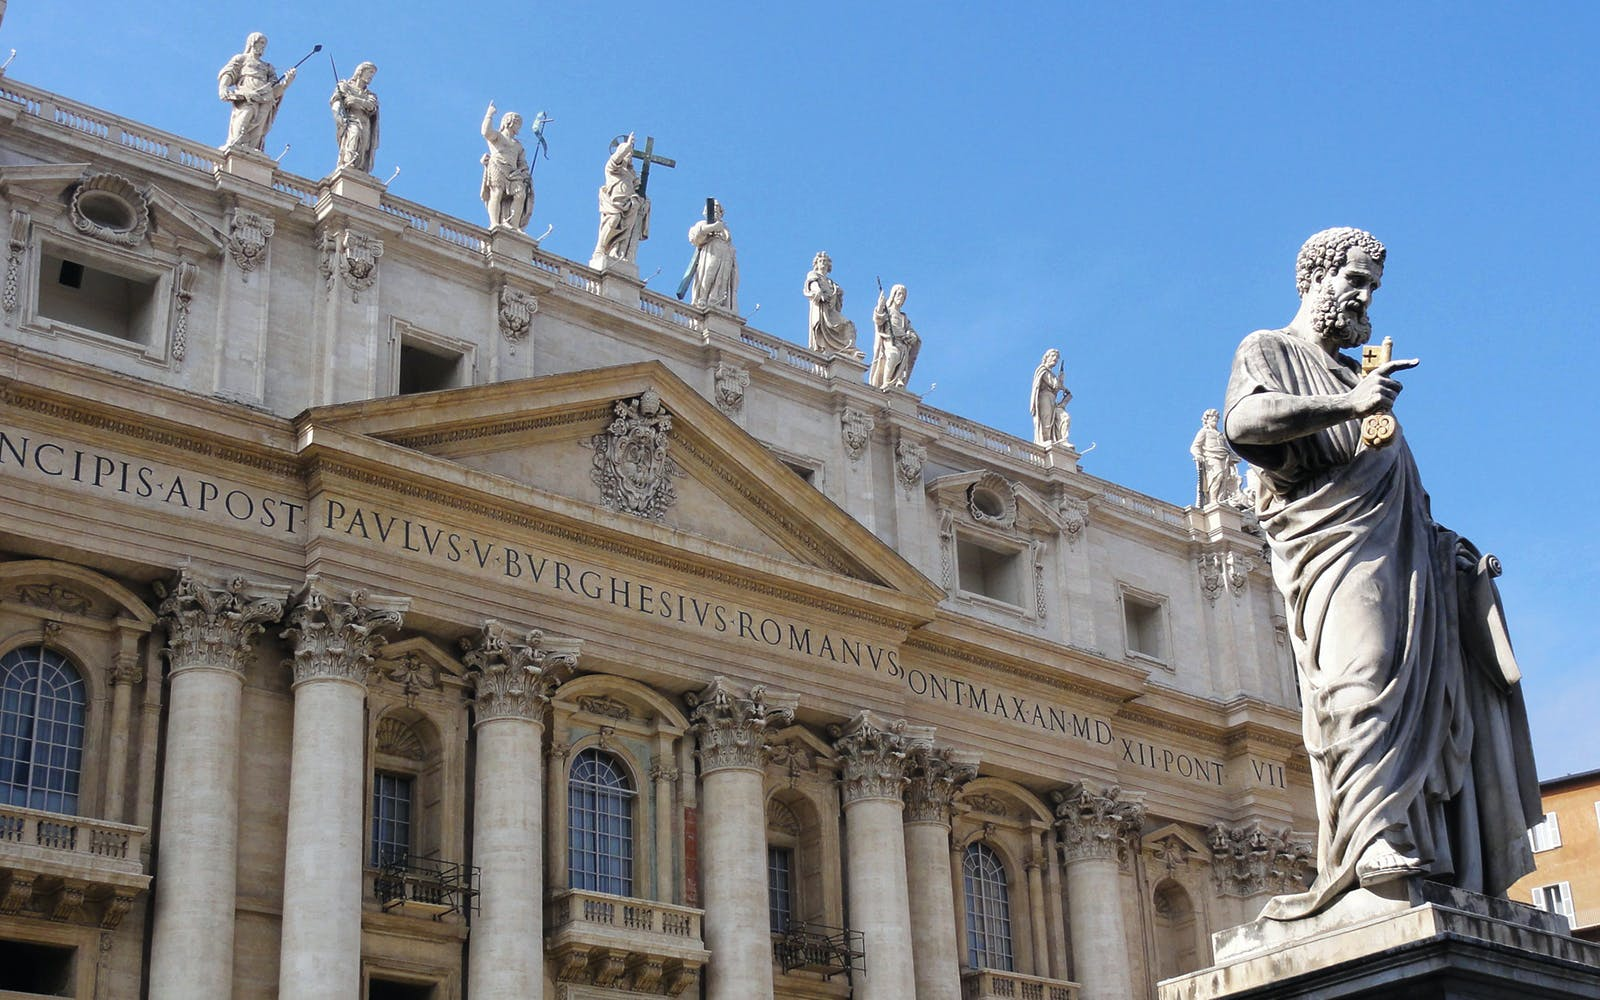 Skip the Line: St. Peter's Basilica with Audioguide